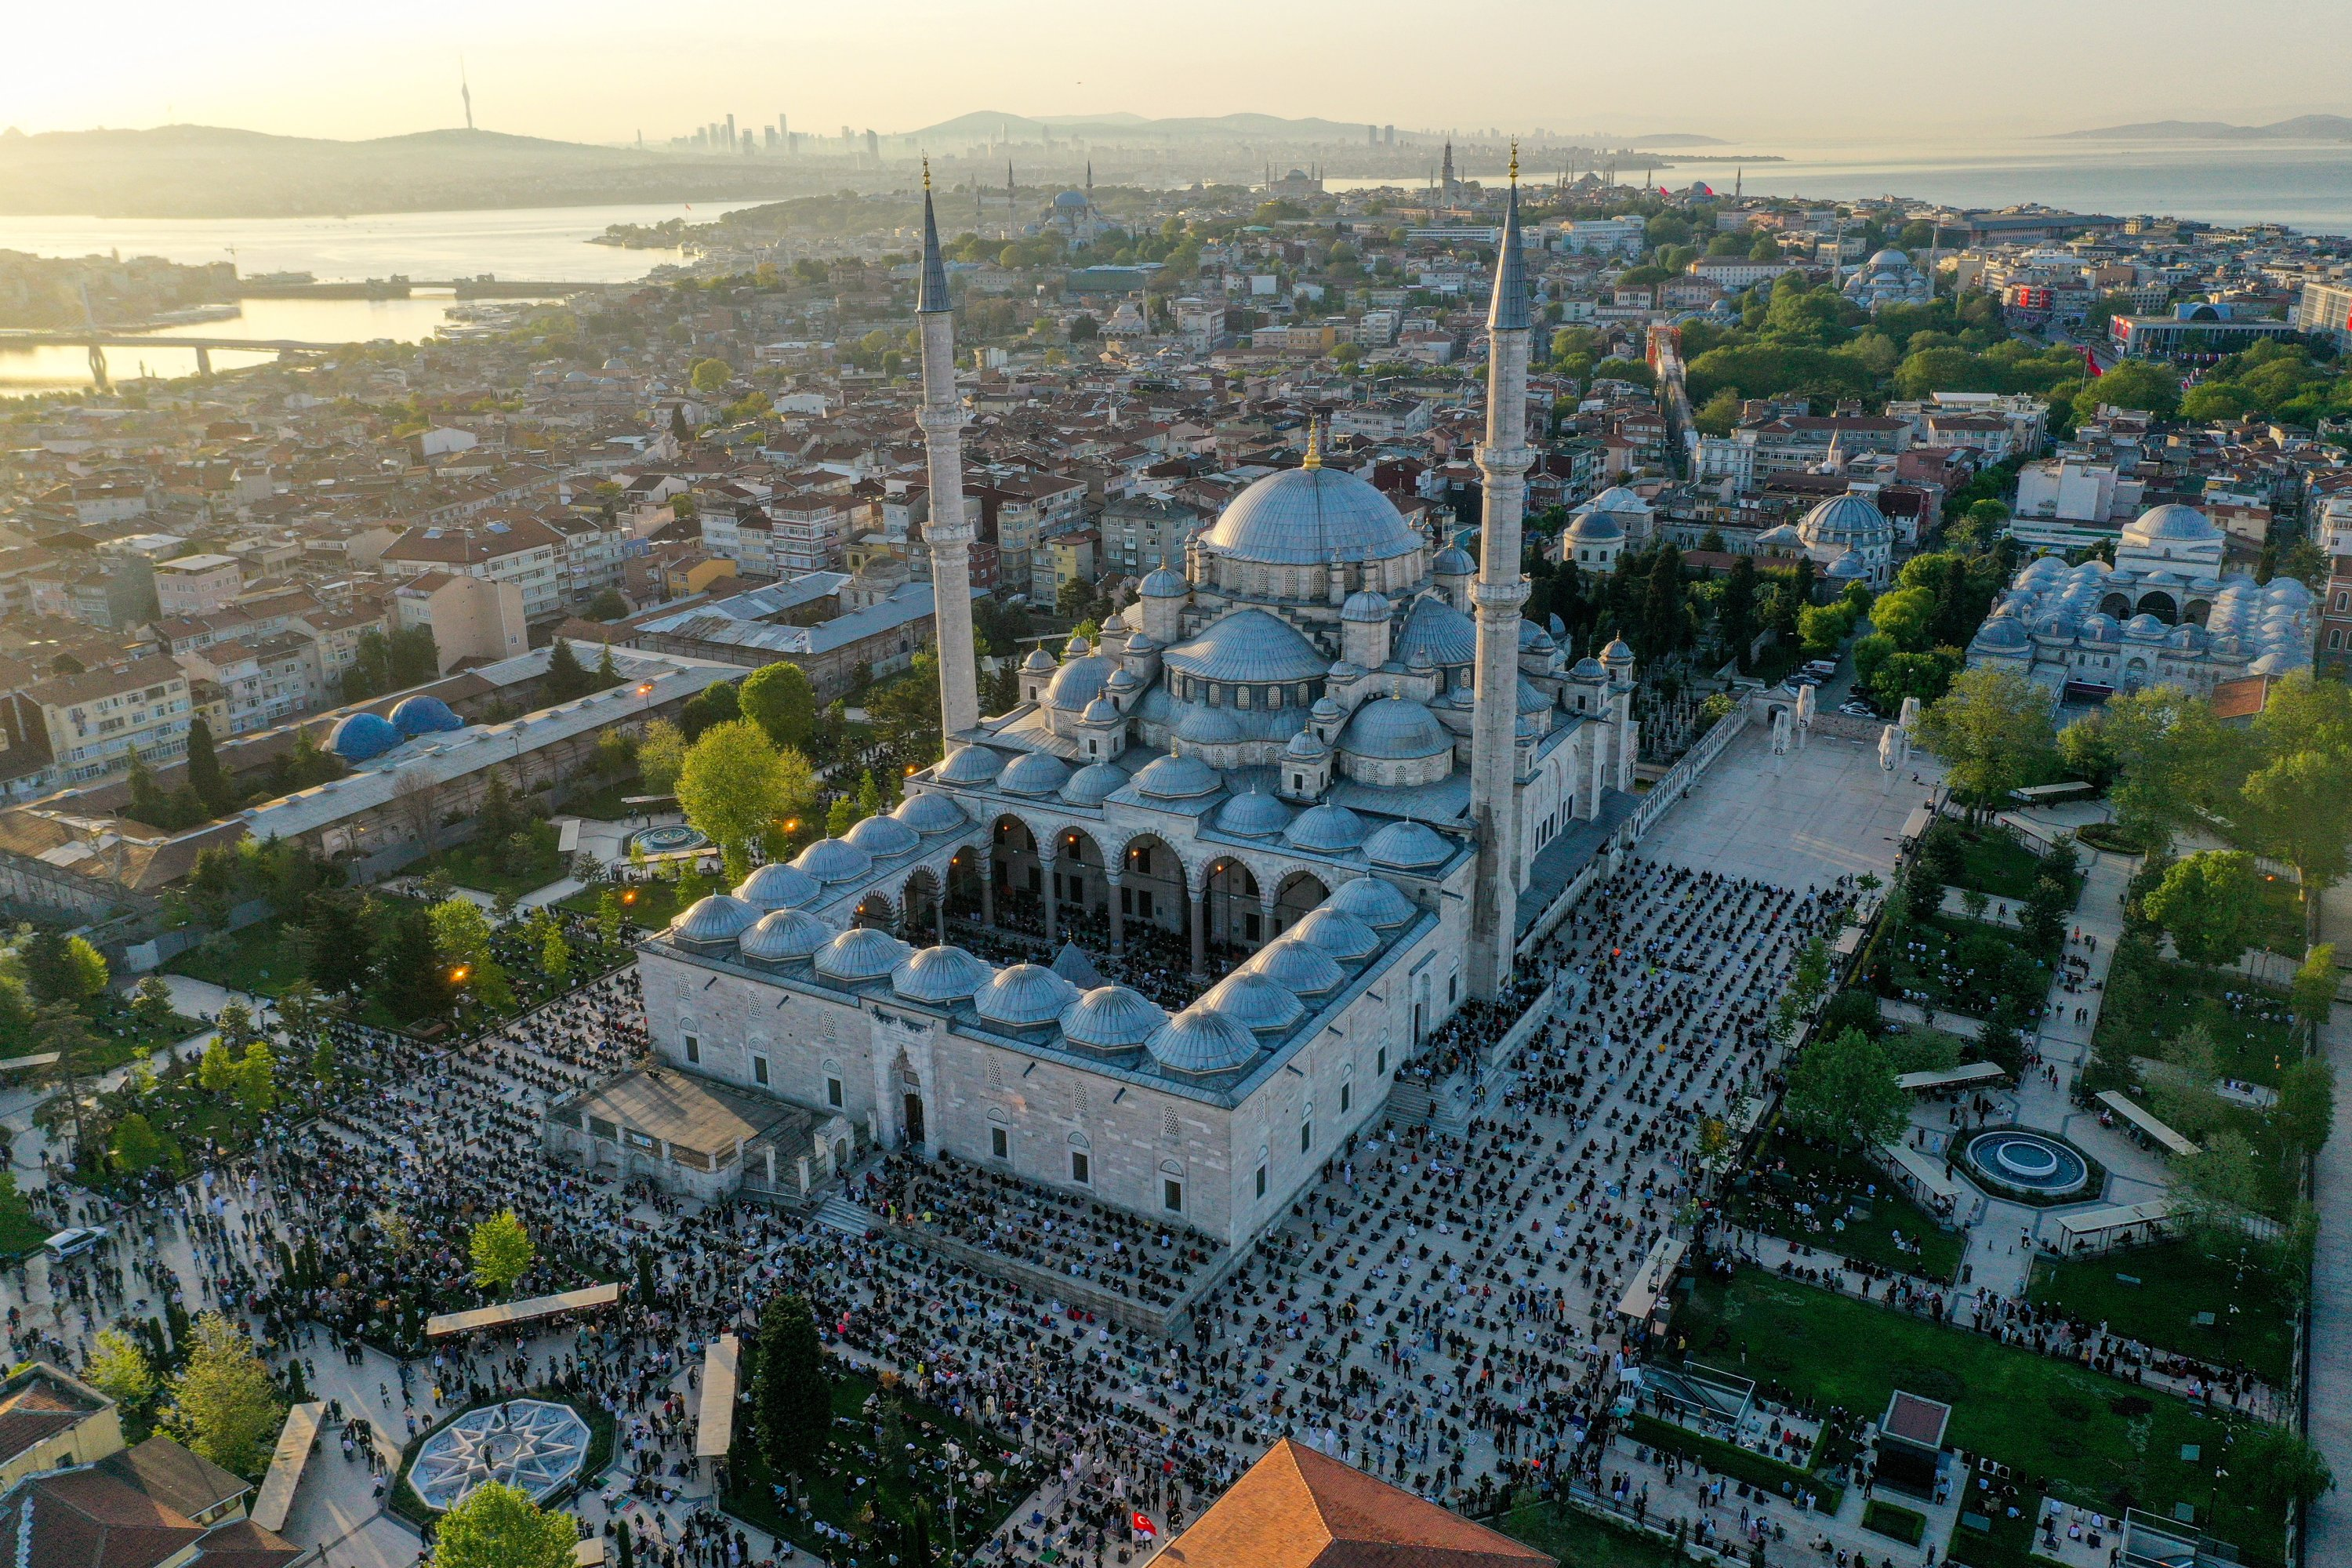 Muslim worshippers gather for the Ramadan Bayram prayers at the Fatih Mosque in Istanbul, Turkey, May 13, 2021. (AA Photo)